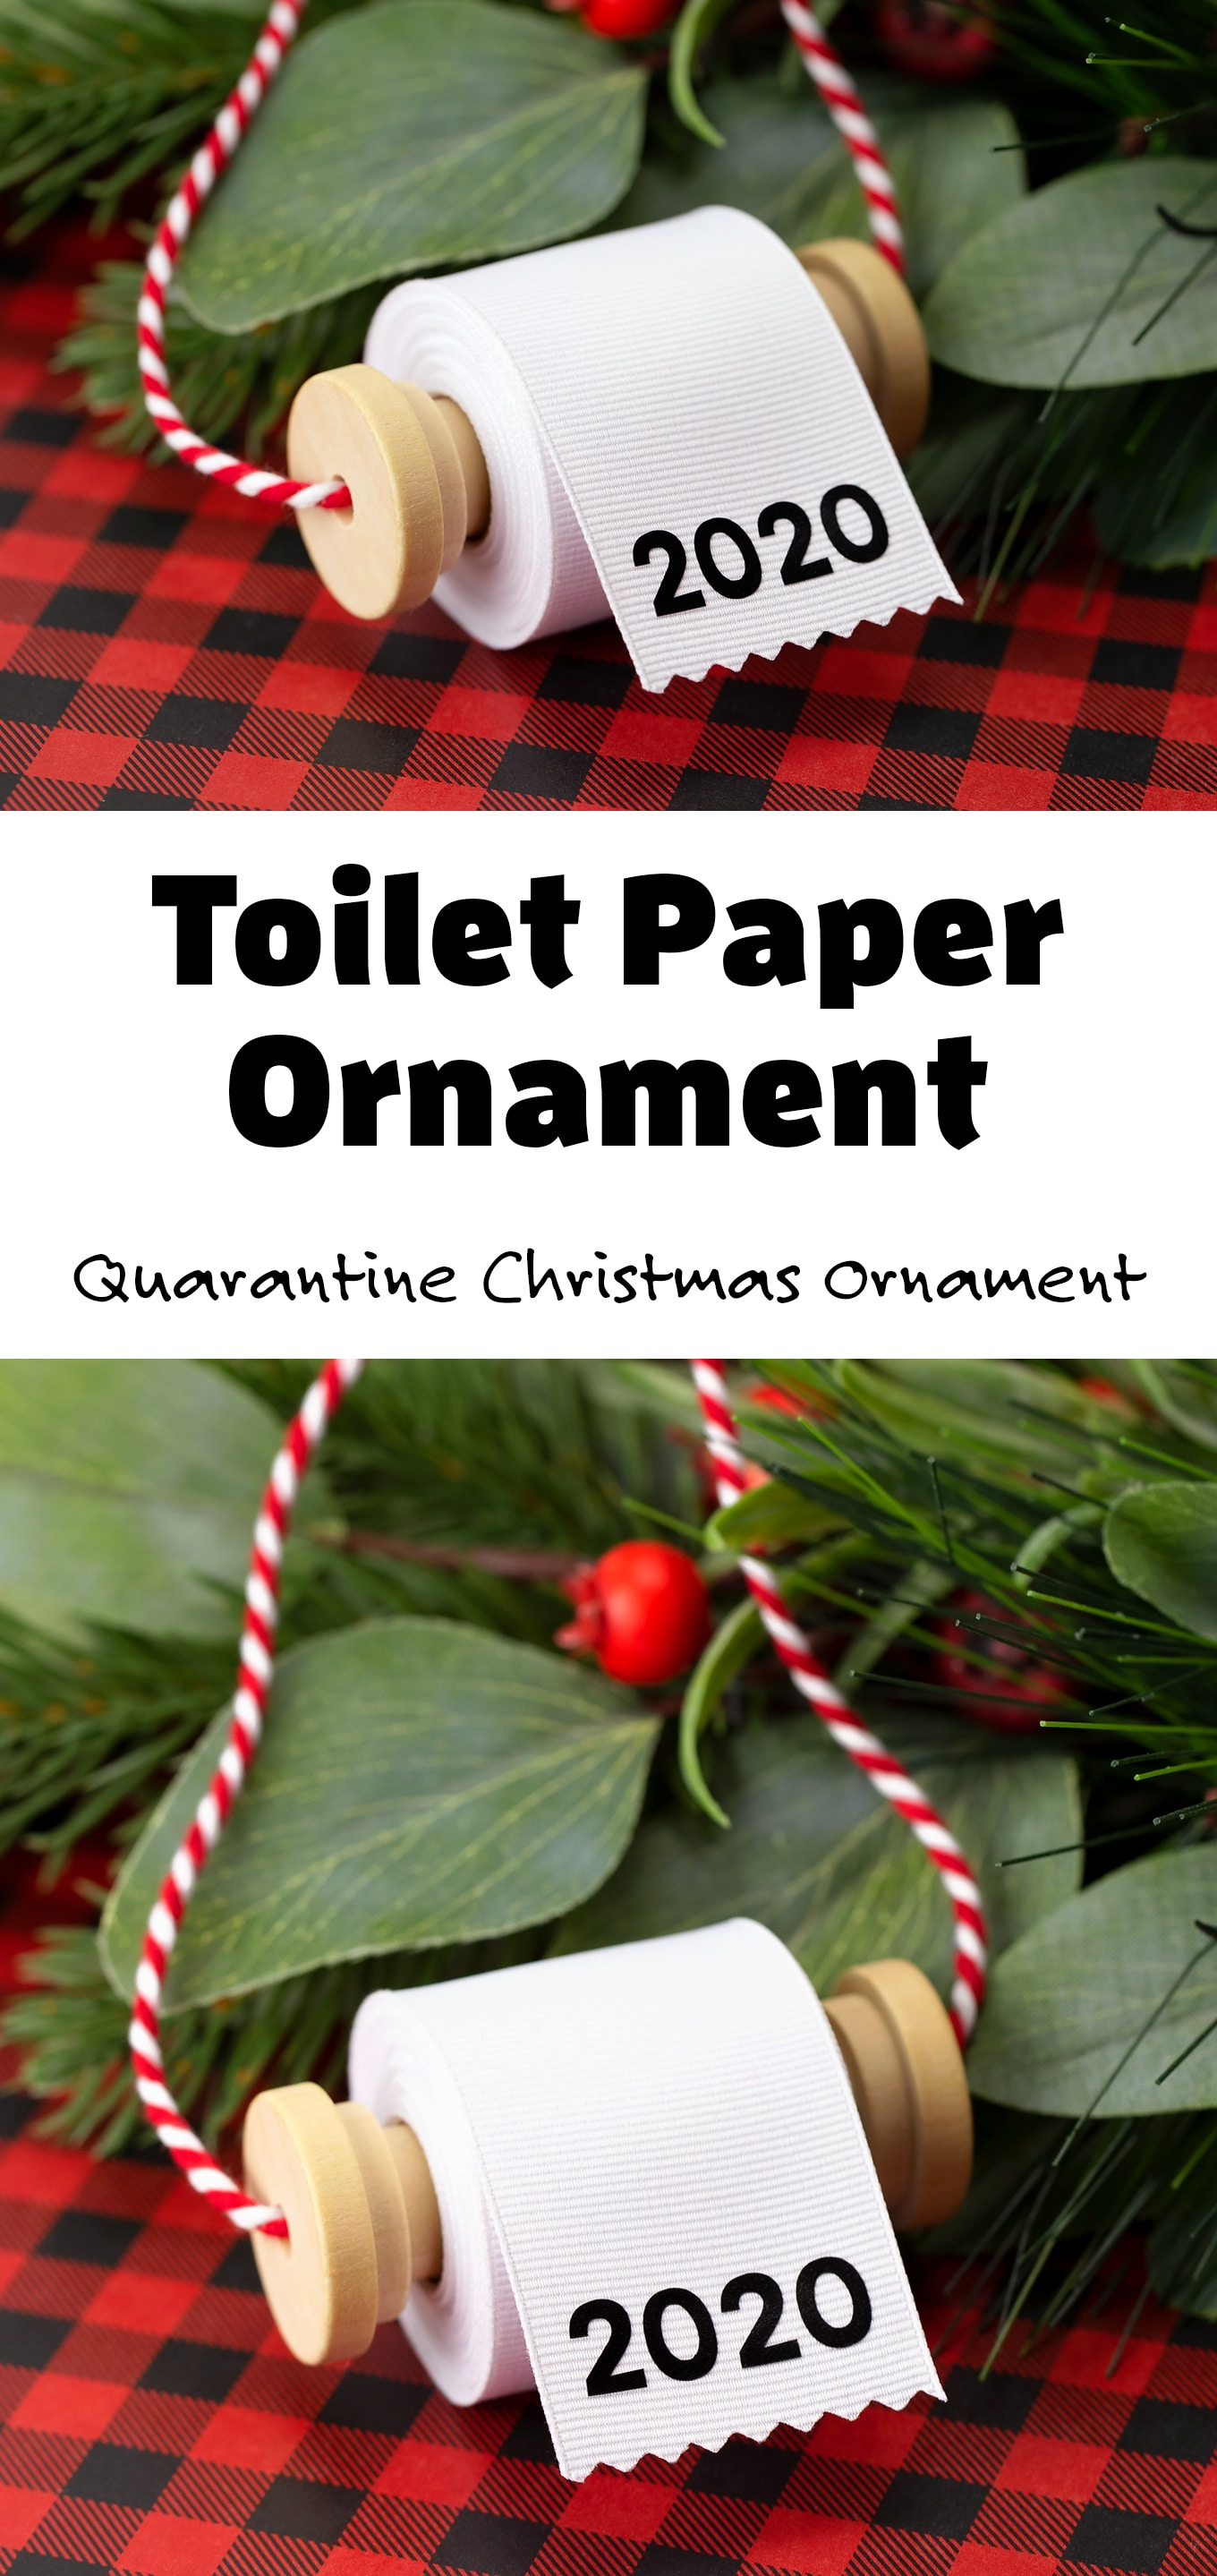 Looking for the perfect DIY Christmas ornament to commemorate 2020? We just couldn't help ourselves with this funny Toilet Paper Ornament for kids! It's the perfect light-hearted quarantine Christmas ornament for 2020! #2020toiletpaperornament #quarantinechristmasornament #toiletpaperornament via @firefliesandmudpies